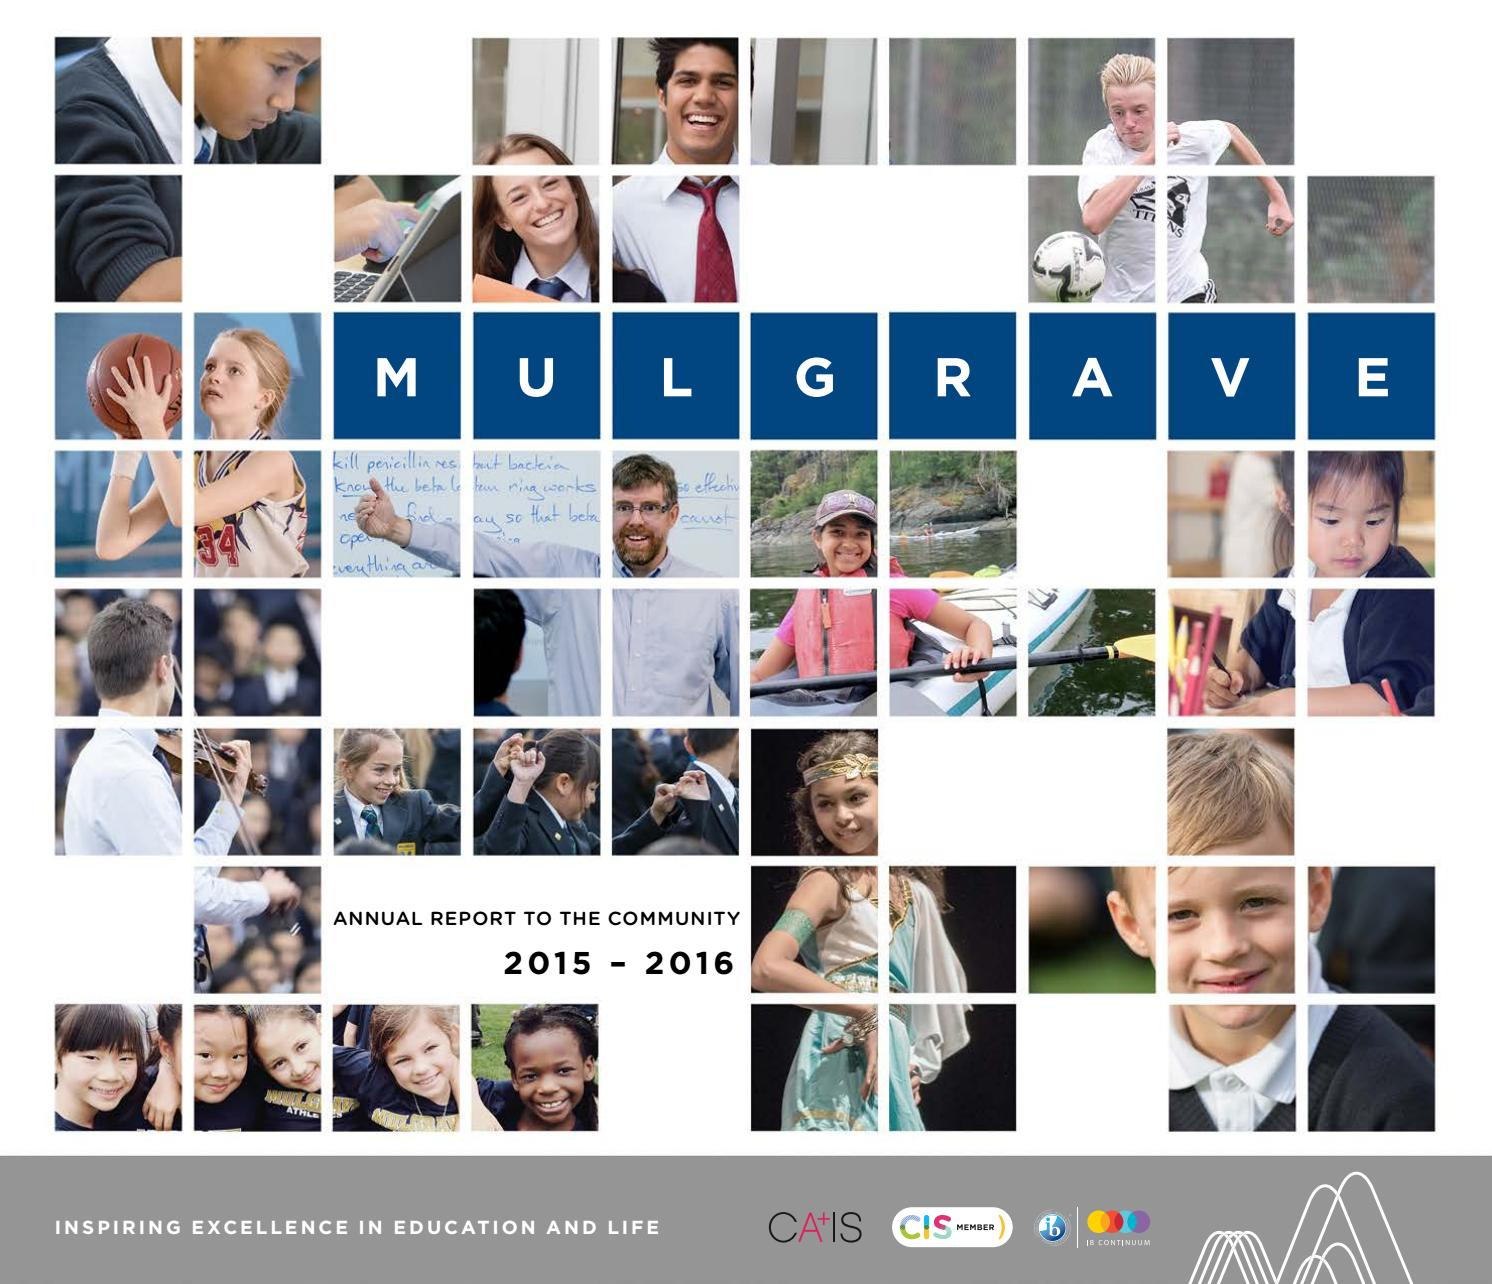 Mulgrave Annual Report 20152016 By Mulgrave School  Issuu intended for Mulgrave School Calendar